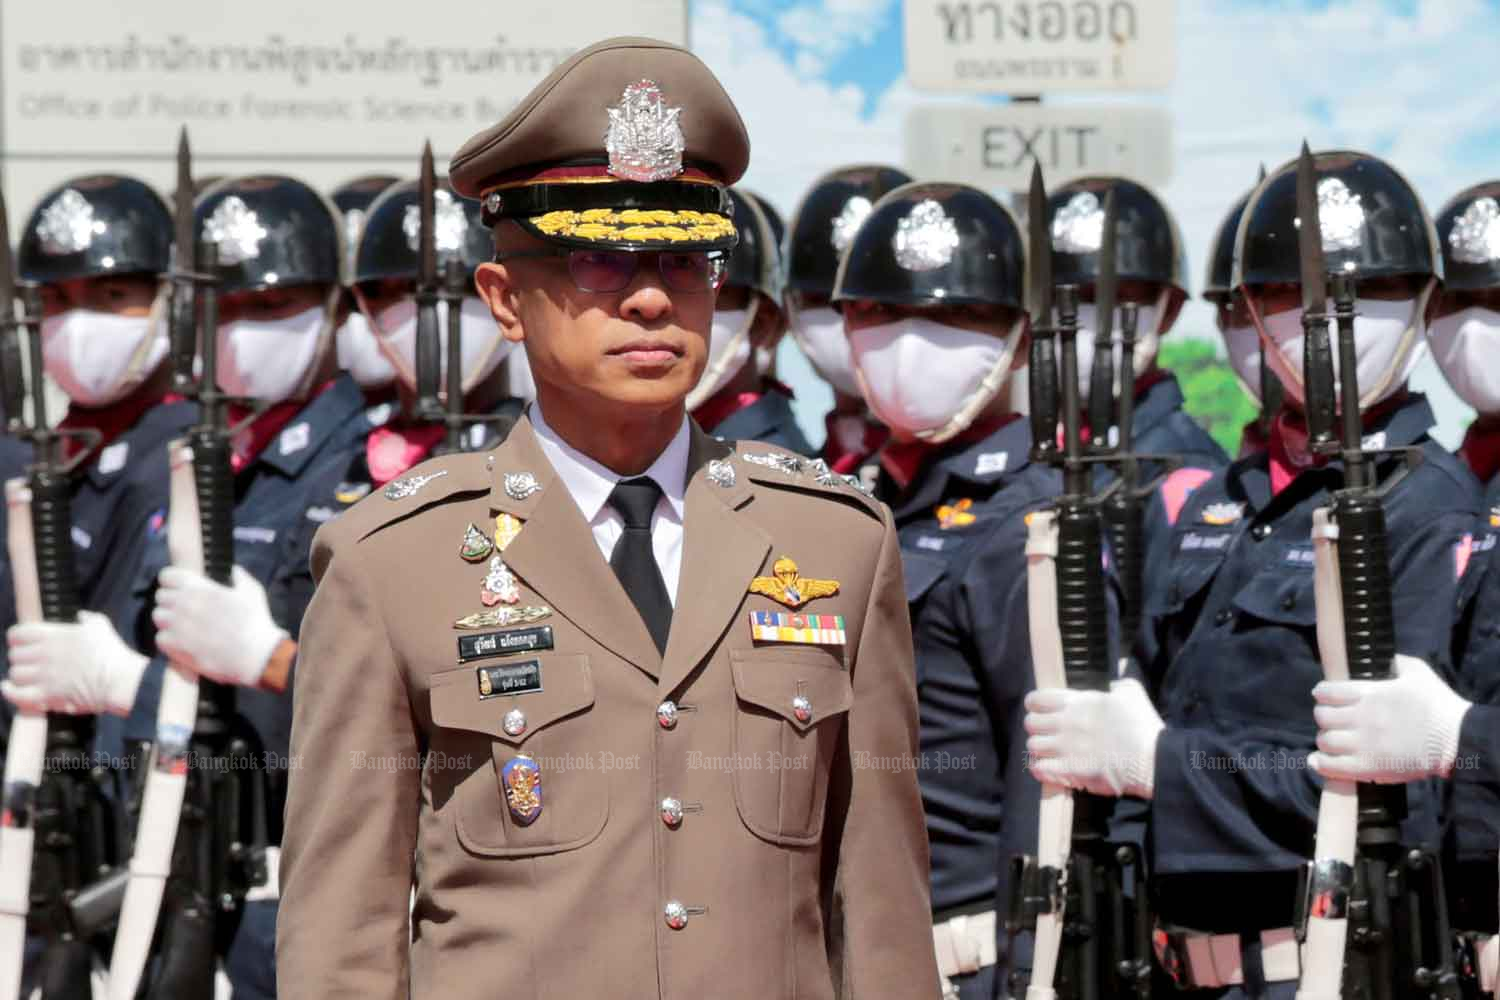 New national police chief Pol Gen Suwat Jangyodsuk inspects the guard of honour at a  ceremony marking his first day in the job, at Royal Thai Police headquarters in Bangkok on Thursday. (Photo: Chanat Katanyu)